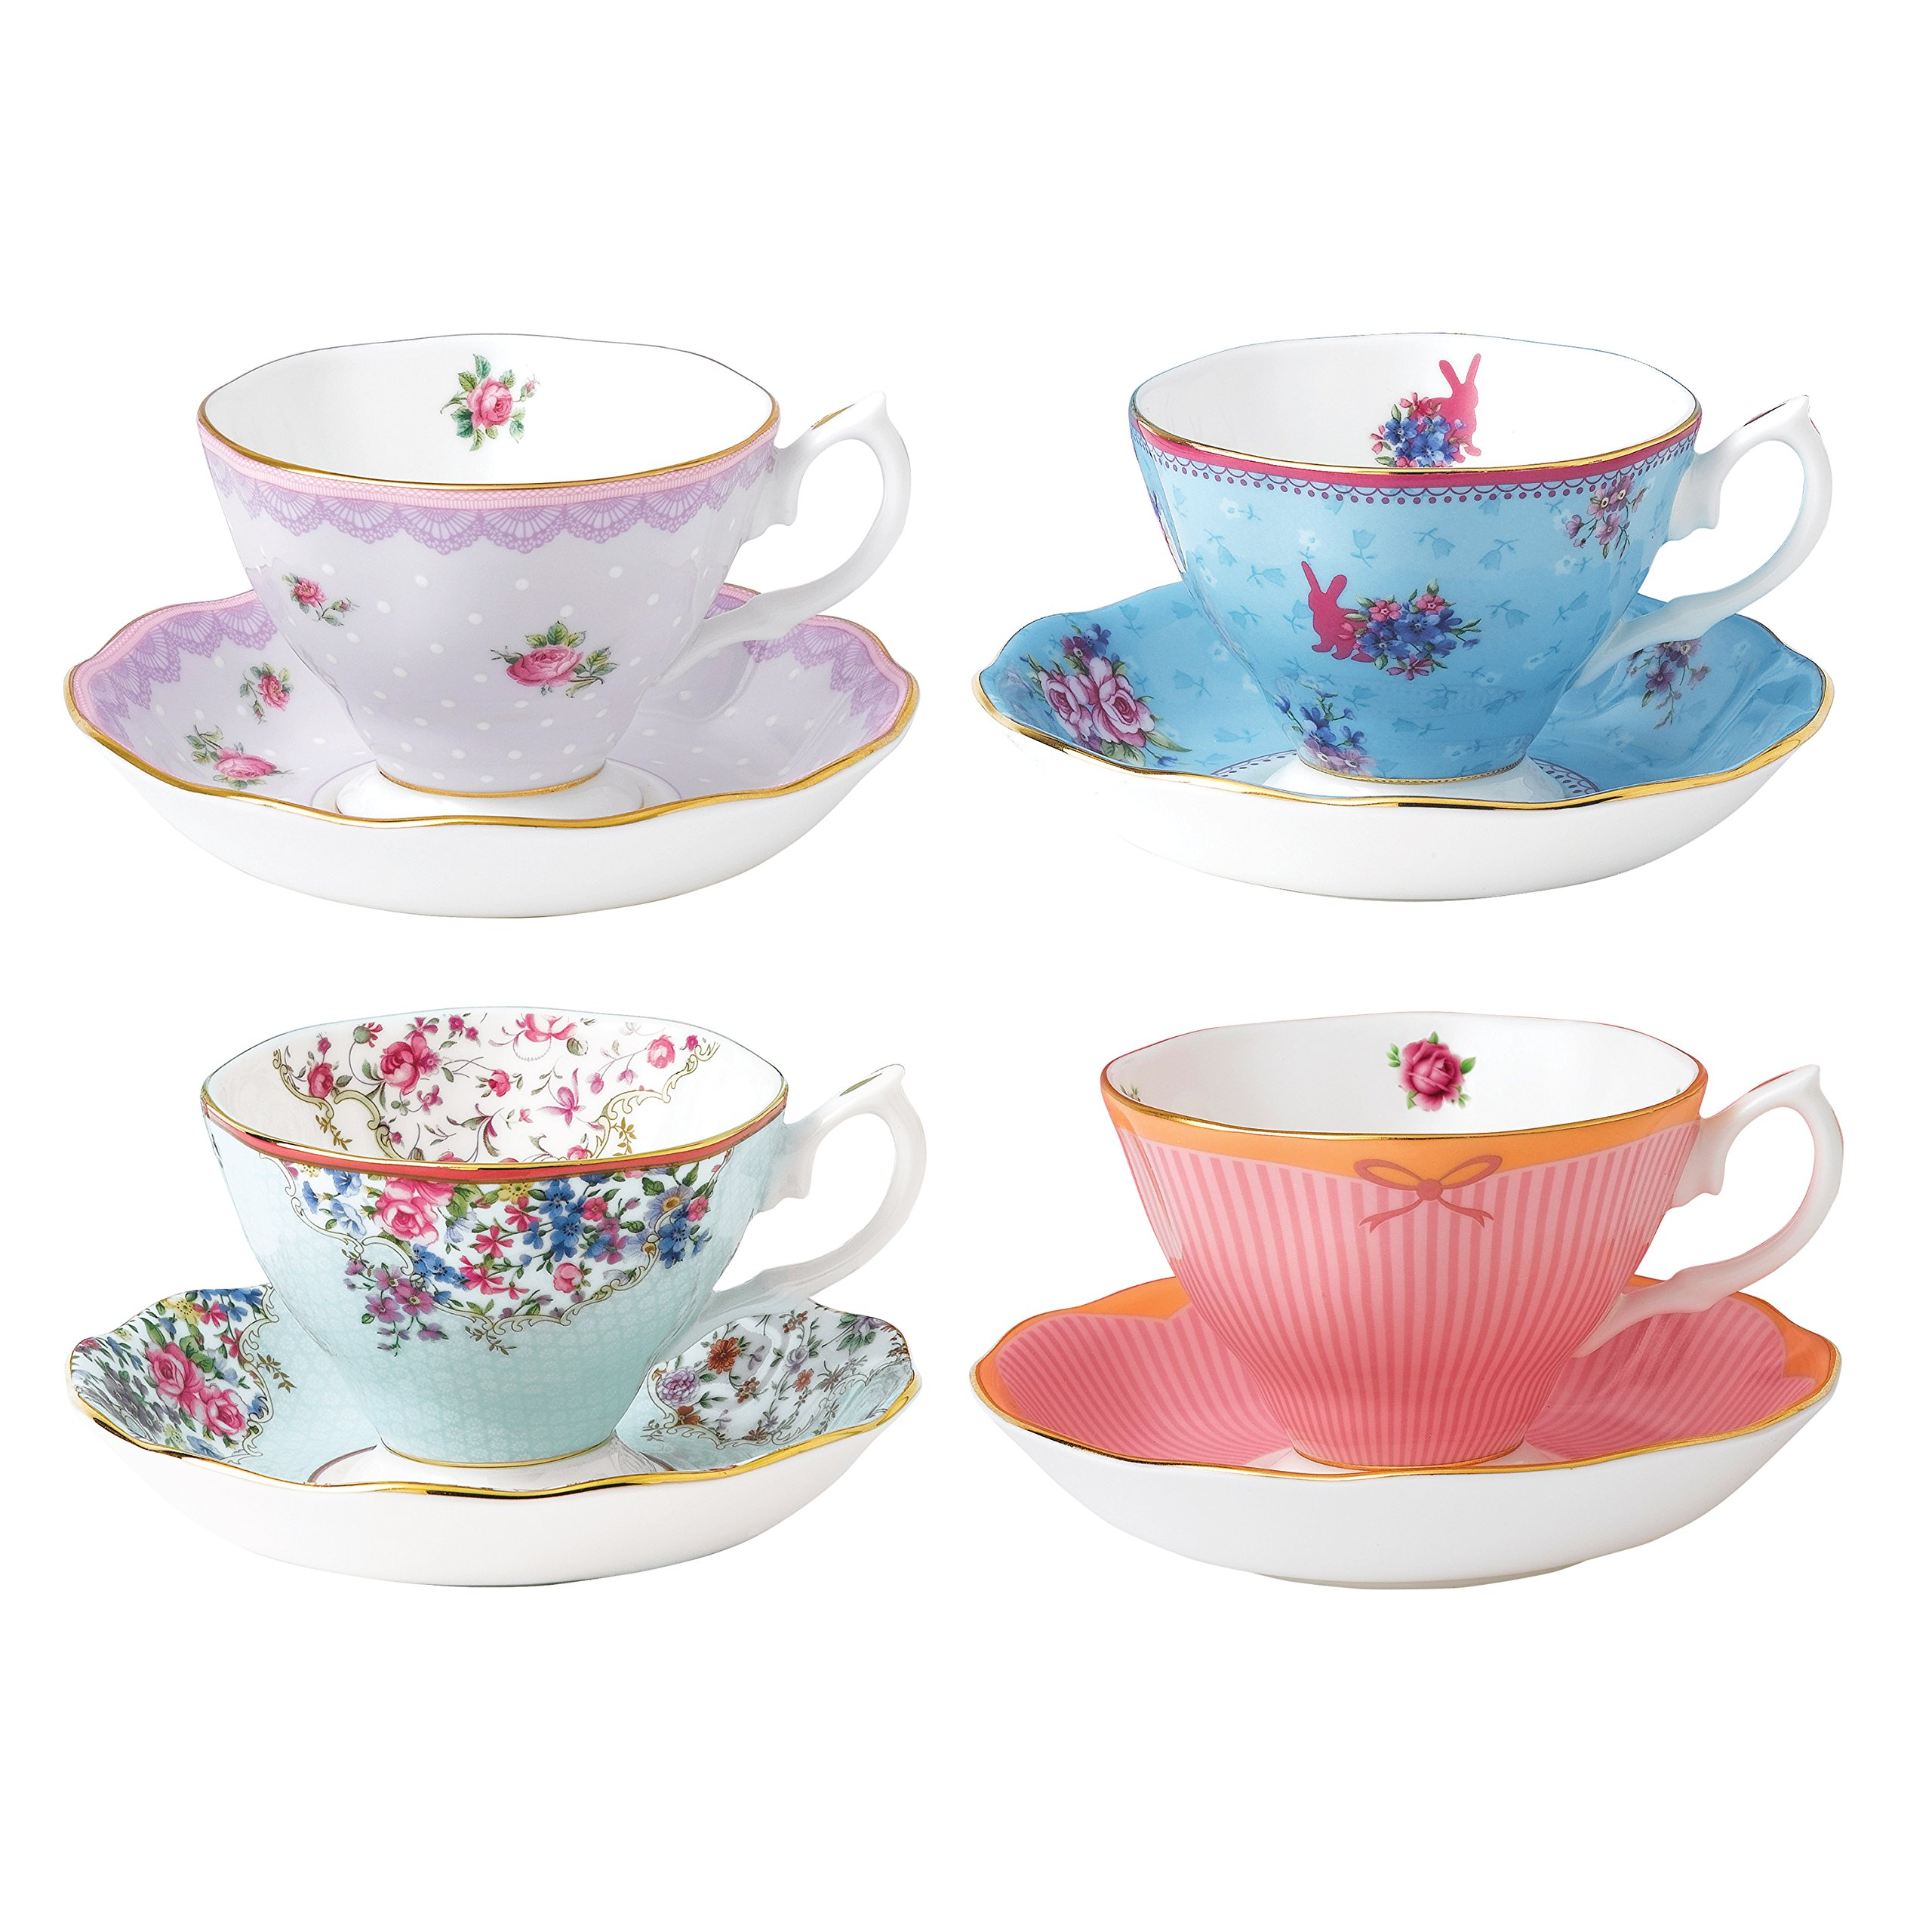 Royal Albert 40002539 Candy Teacup and Saucer Set Set of 4 Multicolor by Royal Albert (Image #1)